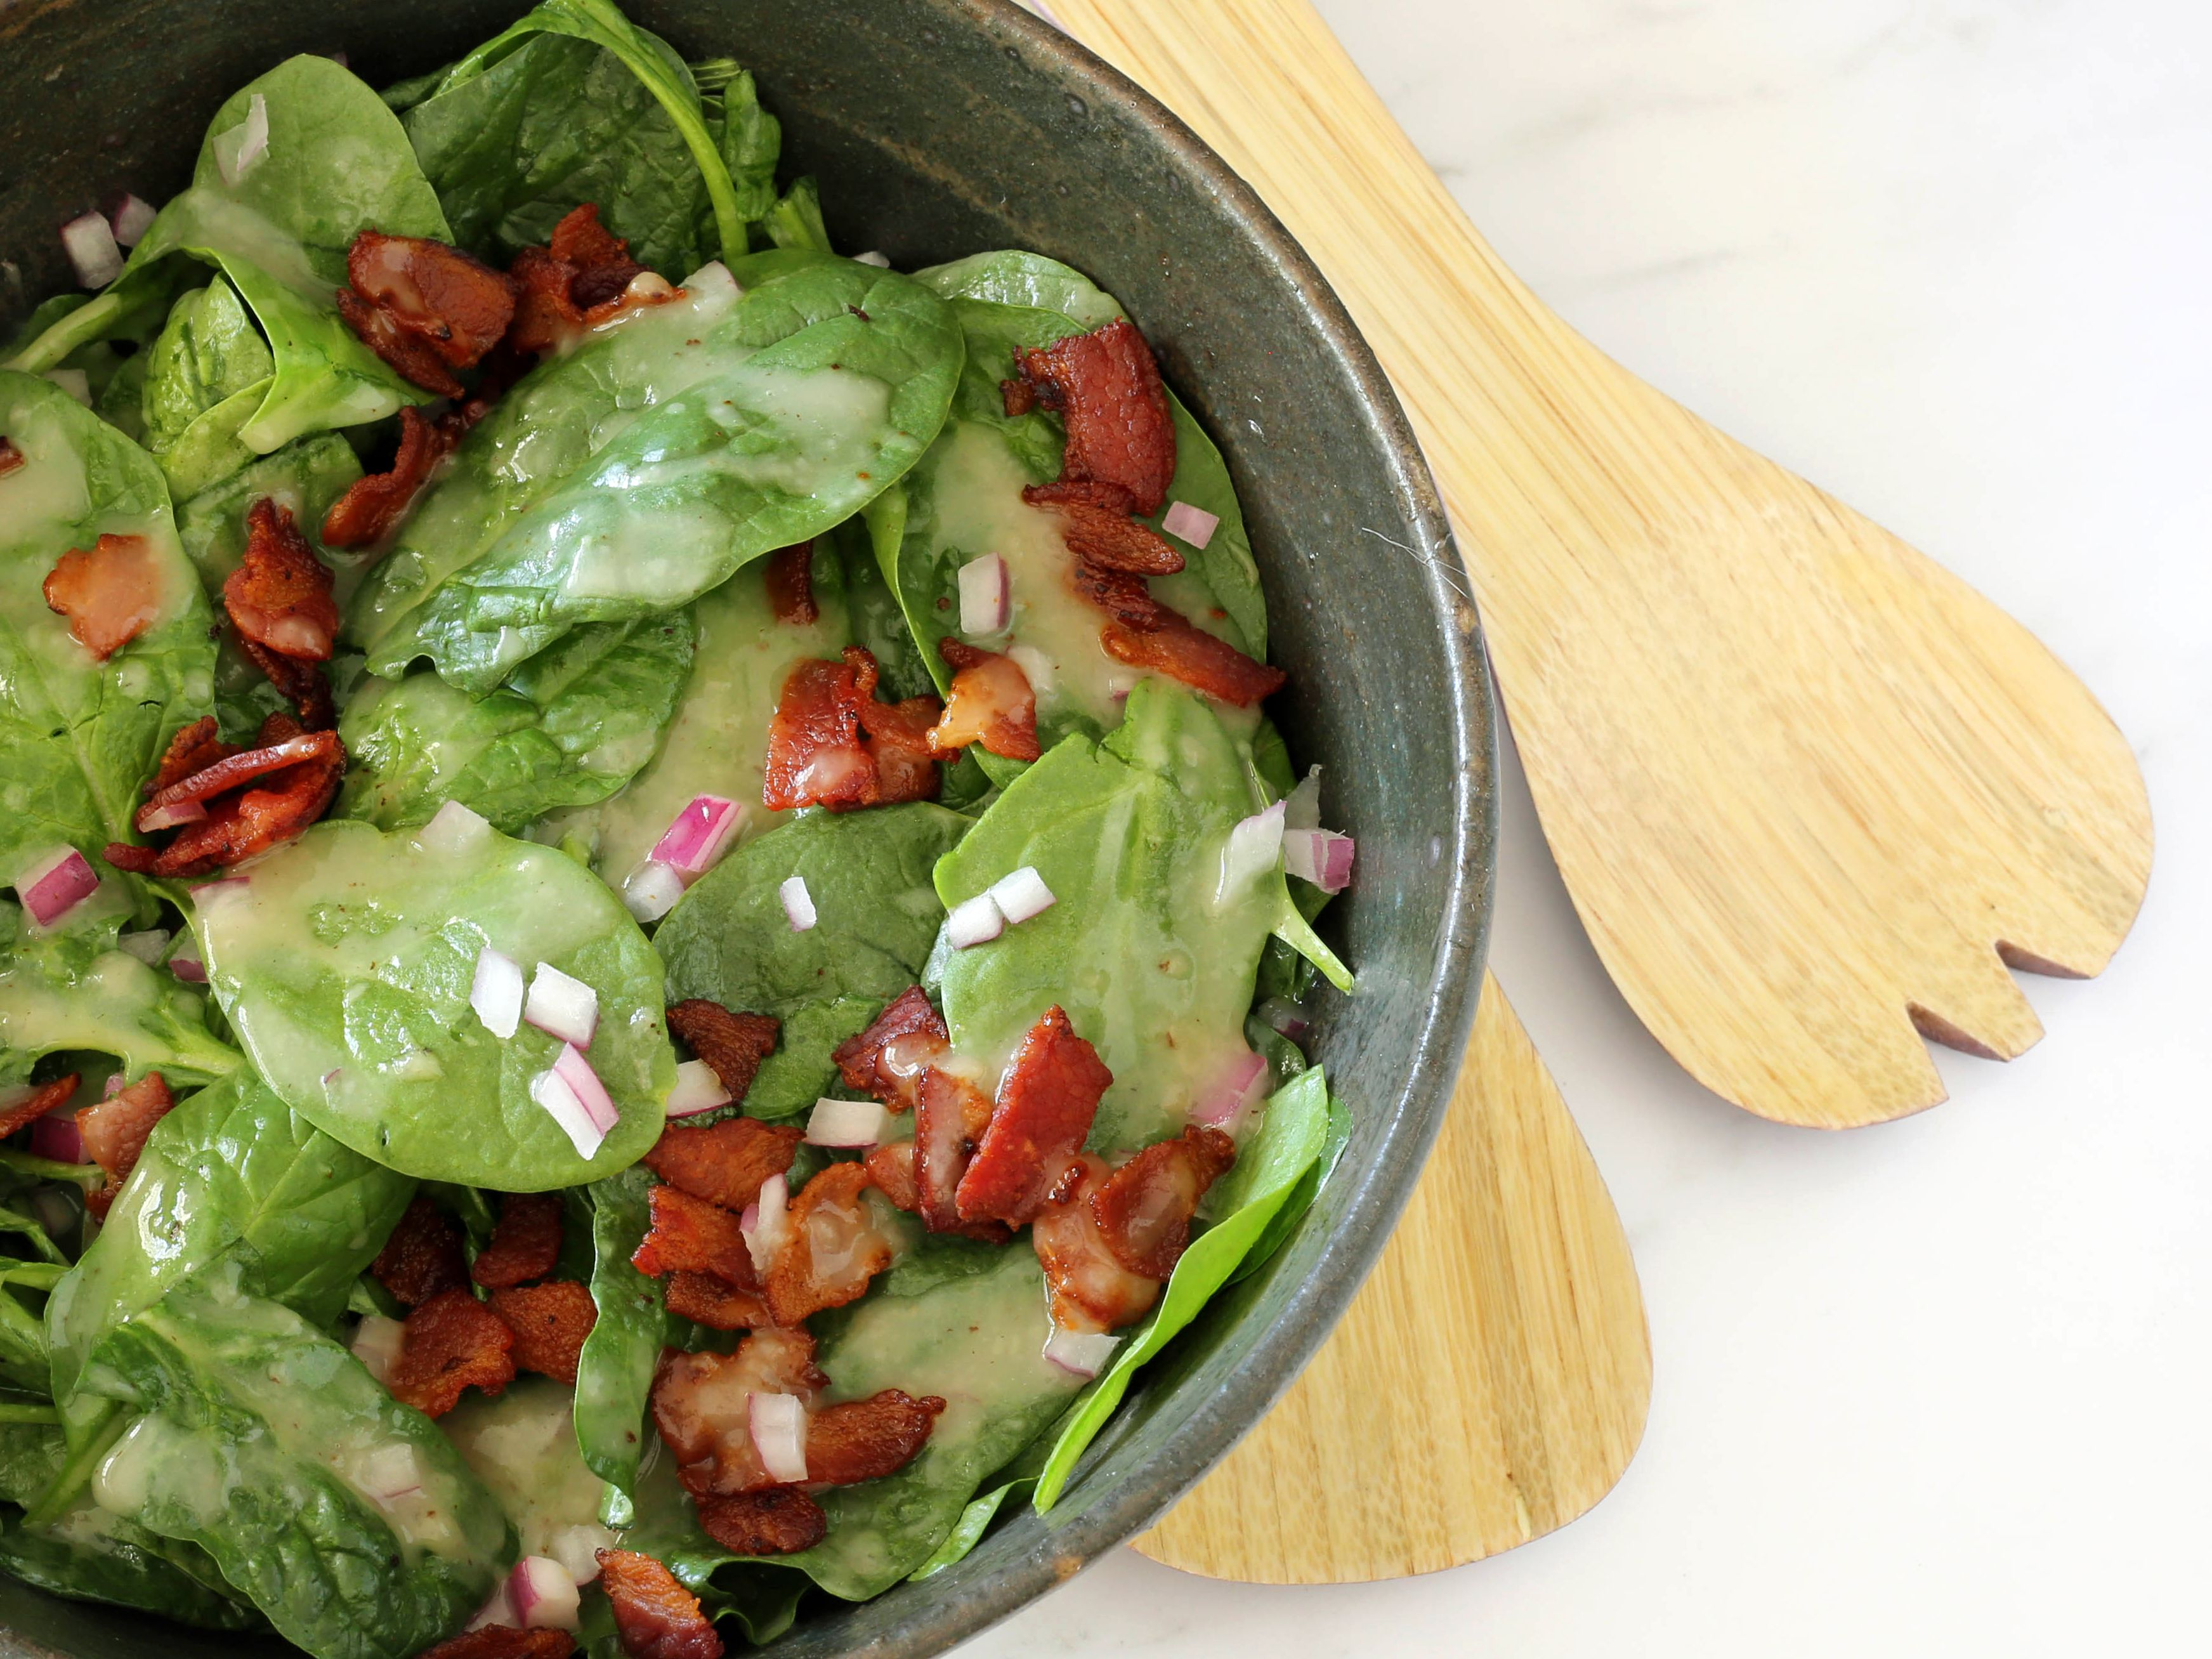 Wilted Spinach With Bacon Recipe